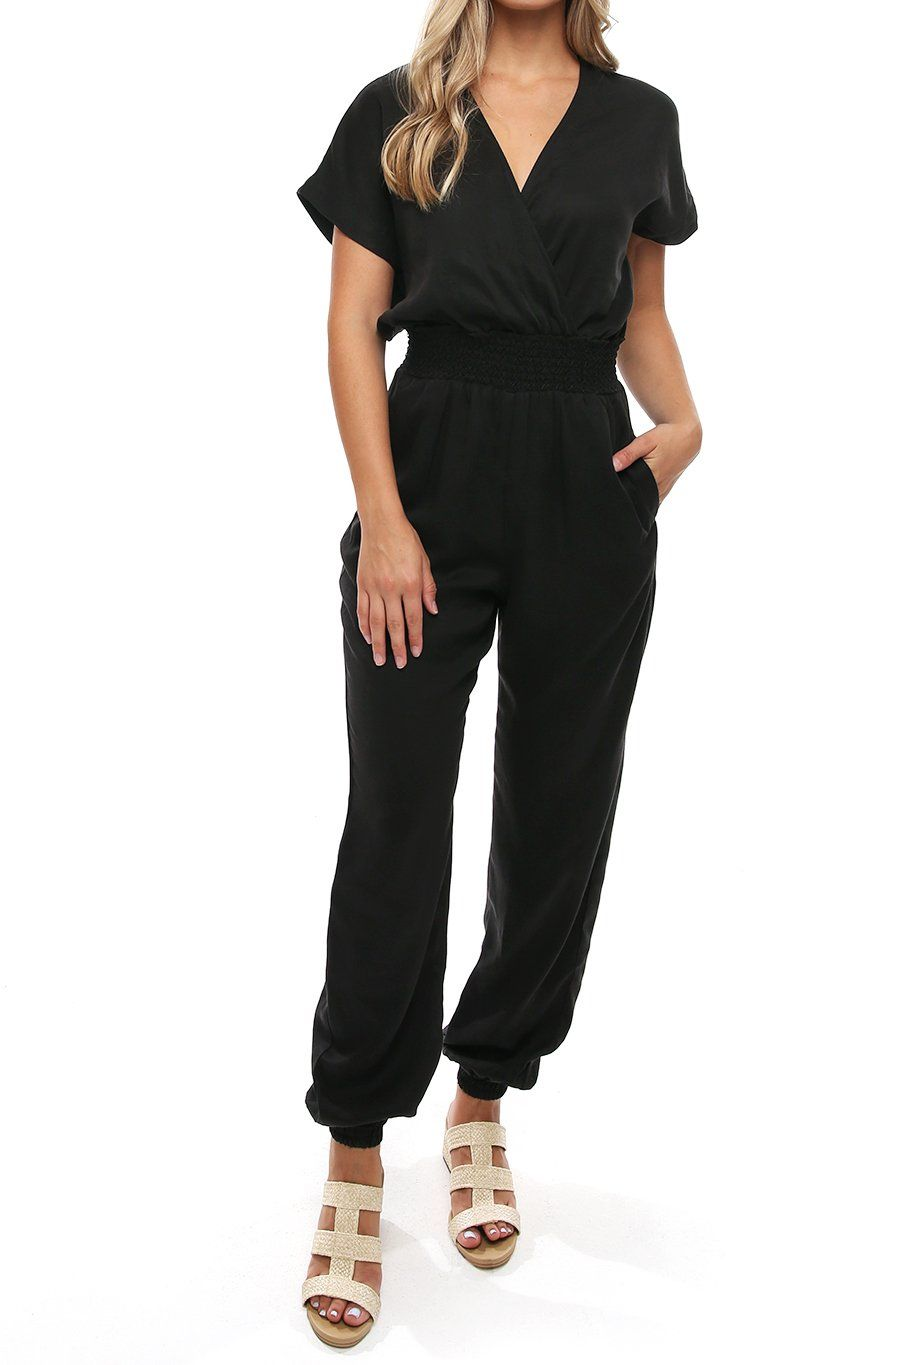 San Pedro Jumpsuit - Black - Shore